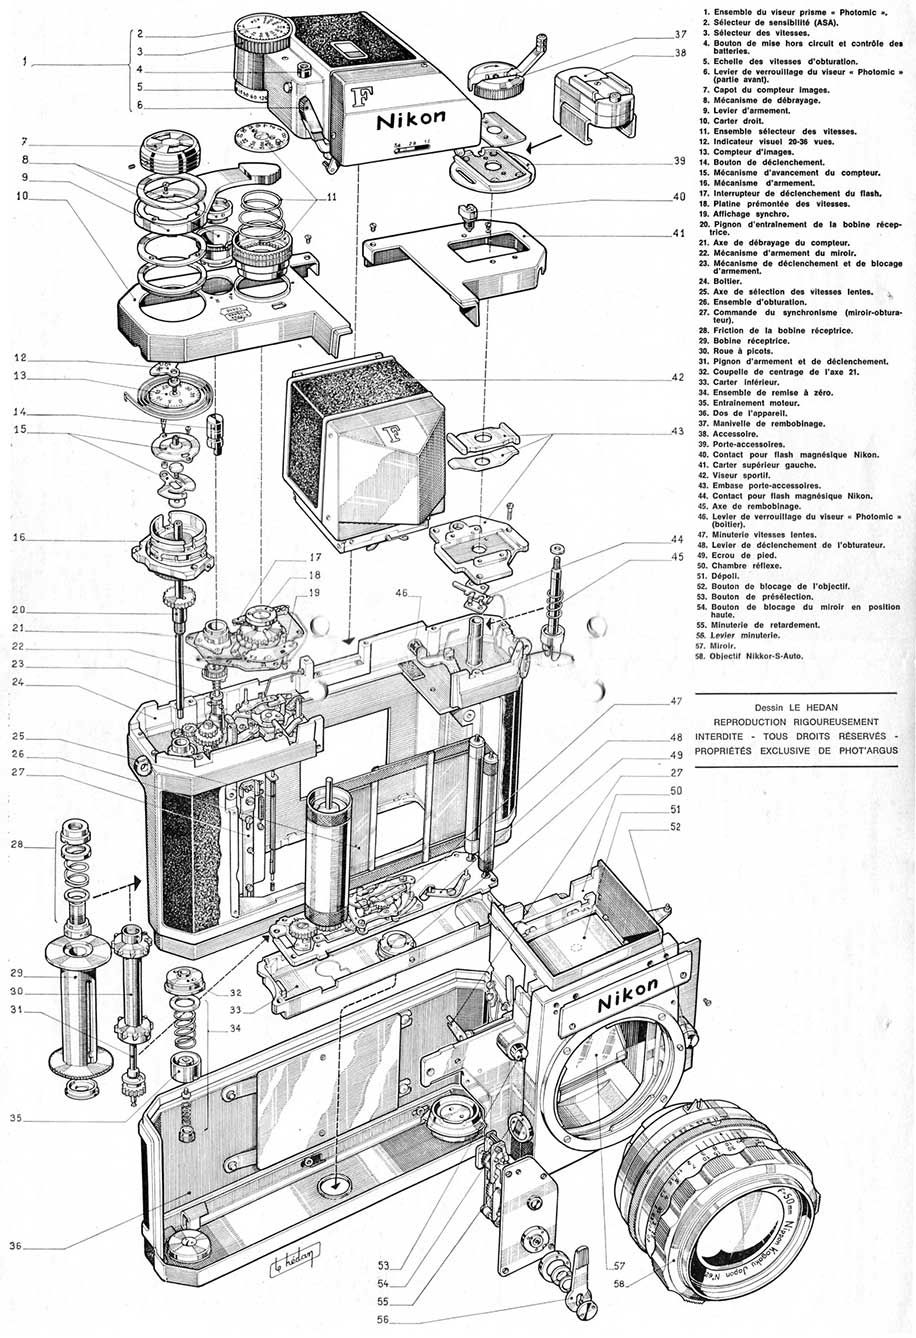 enjoy the mechanical schematics of those old nikon f film cameras